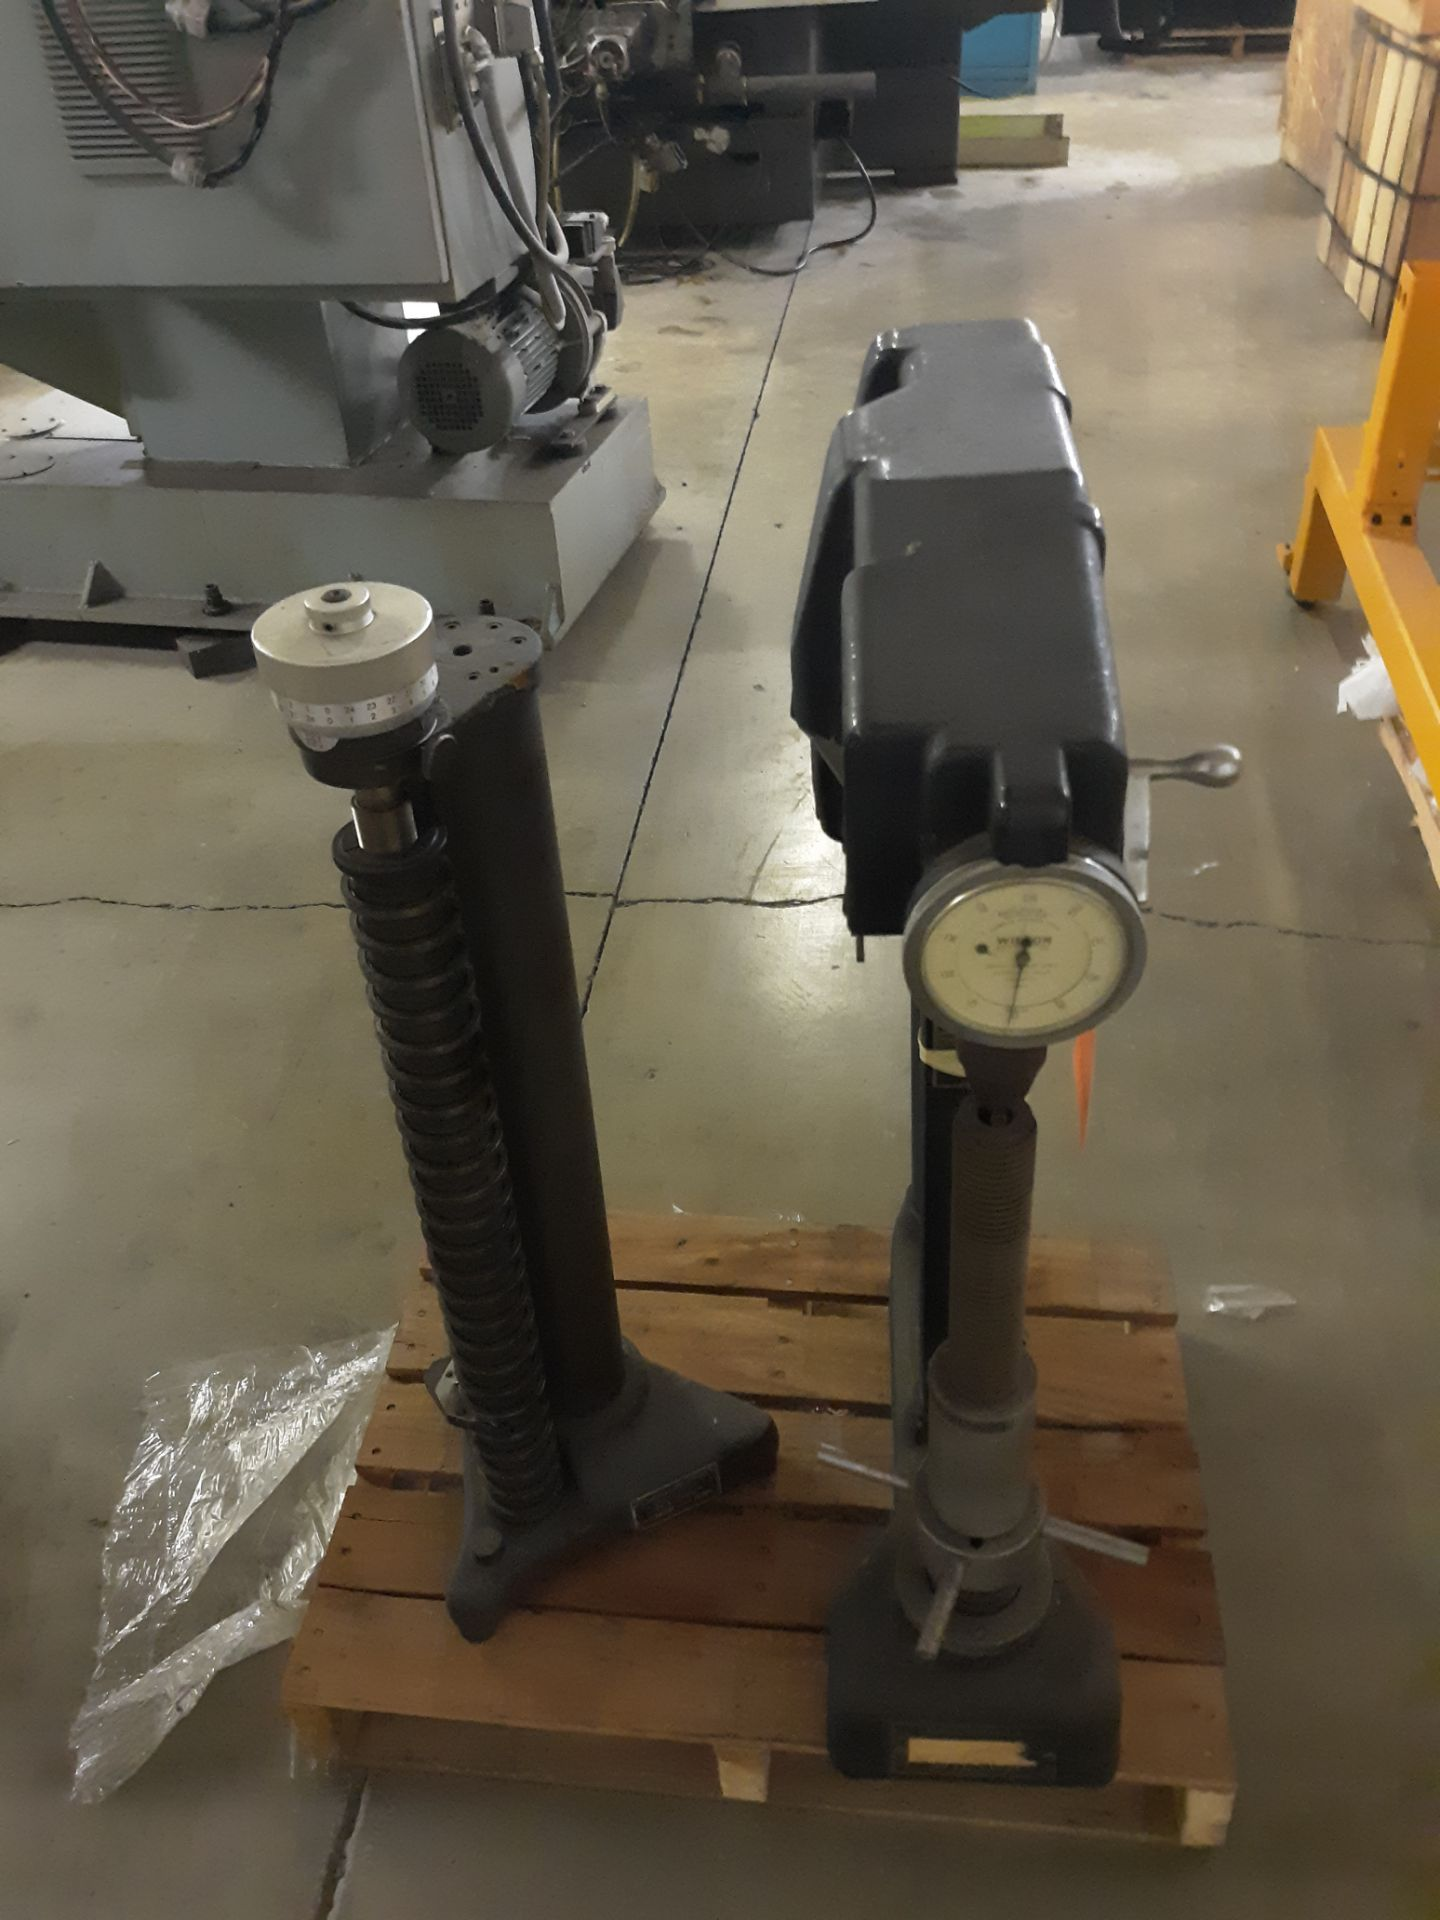 Lot 45 - WILSON ROCKWELL SUPERFICIAL HARDNESS TESTER & GADILLAC PLA-CHEK HEIGHT GAGE: RIGGING FEE:$10